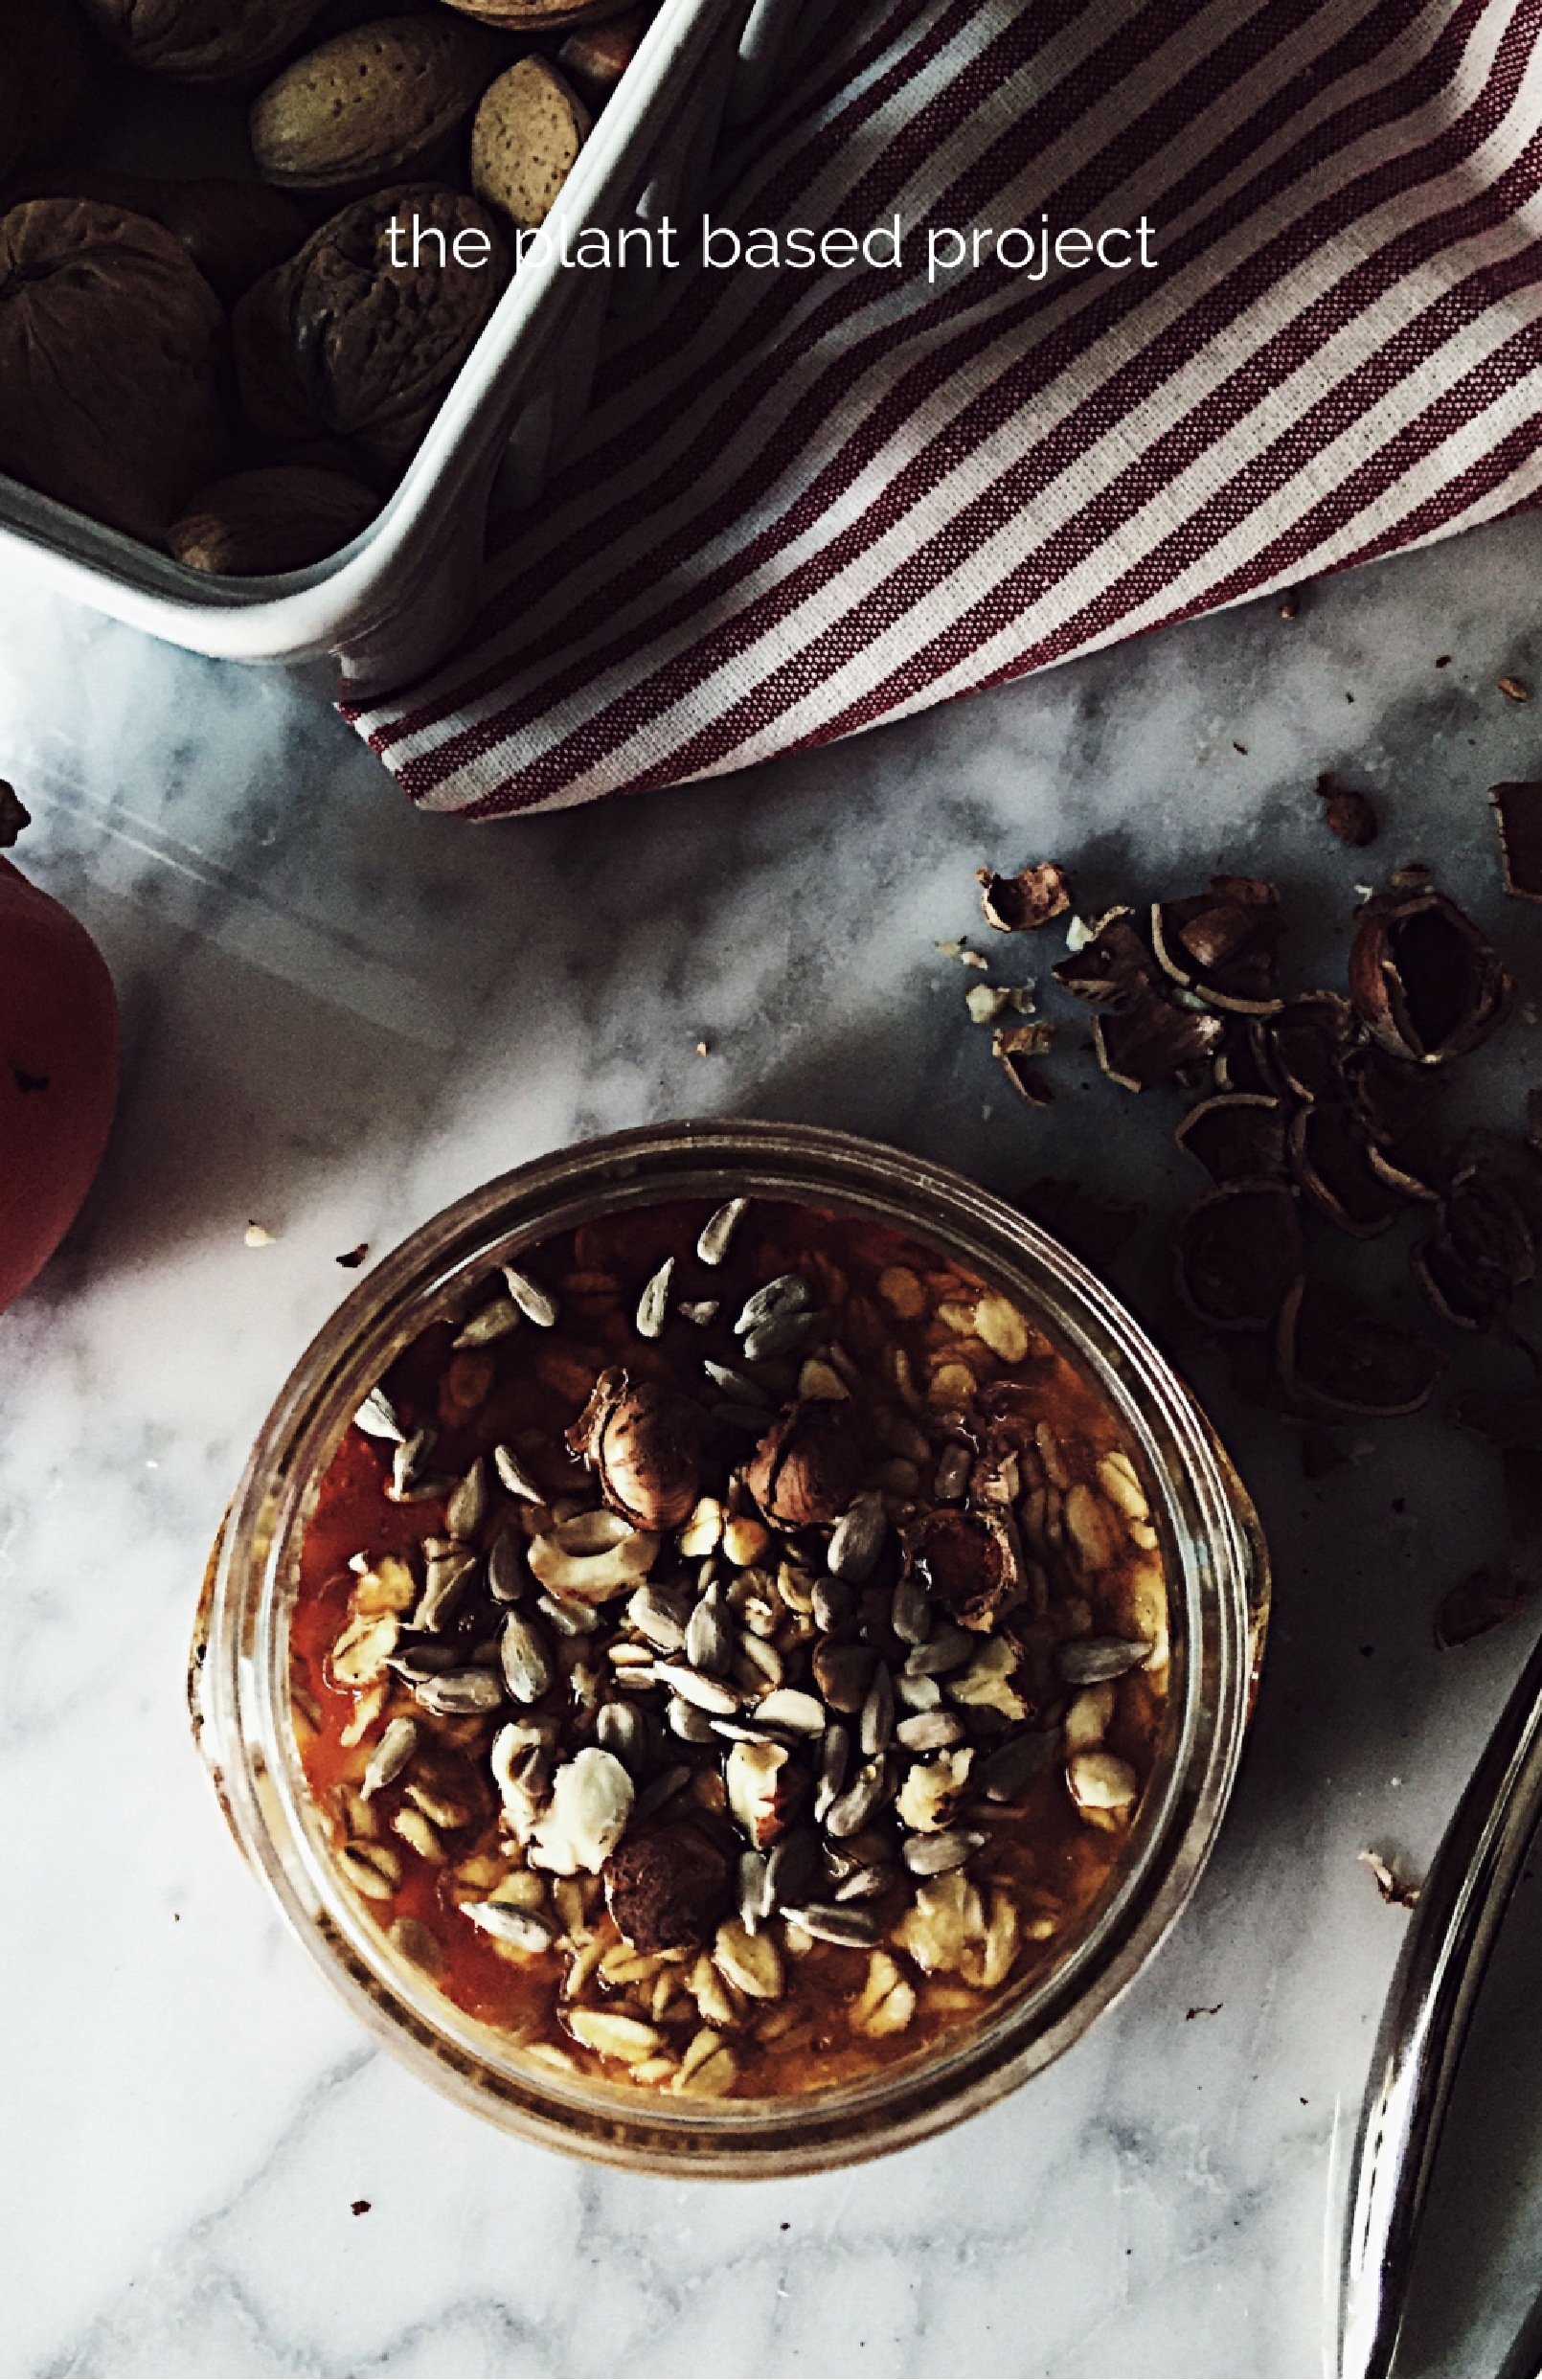 persimmon overnight oatmeal recipe + the stocking